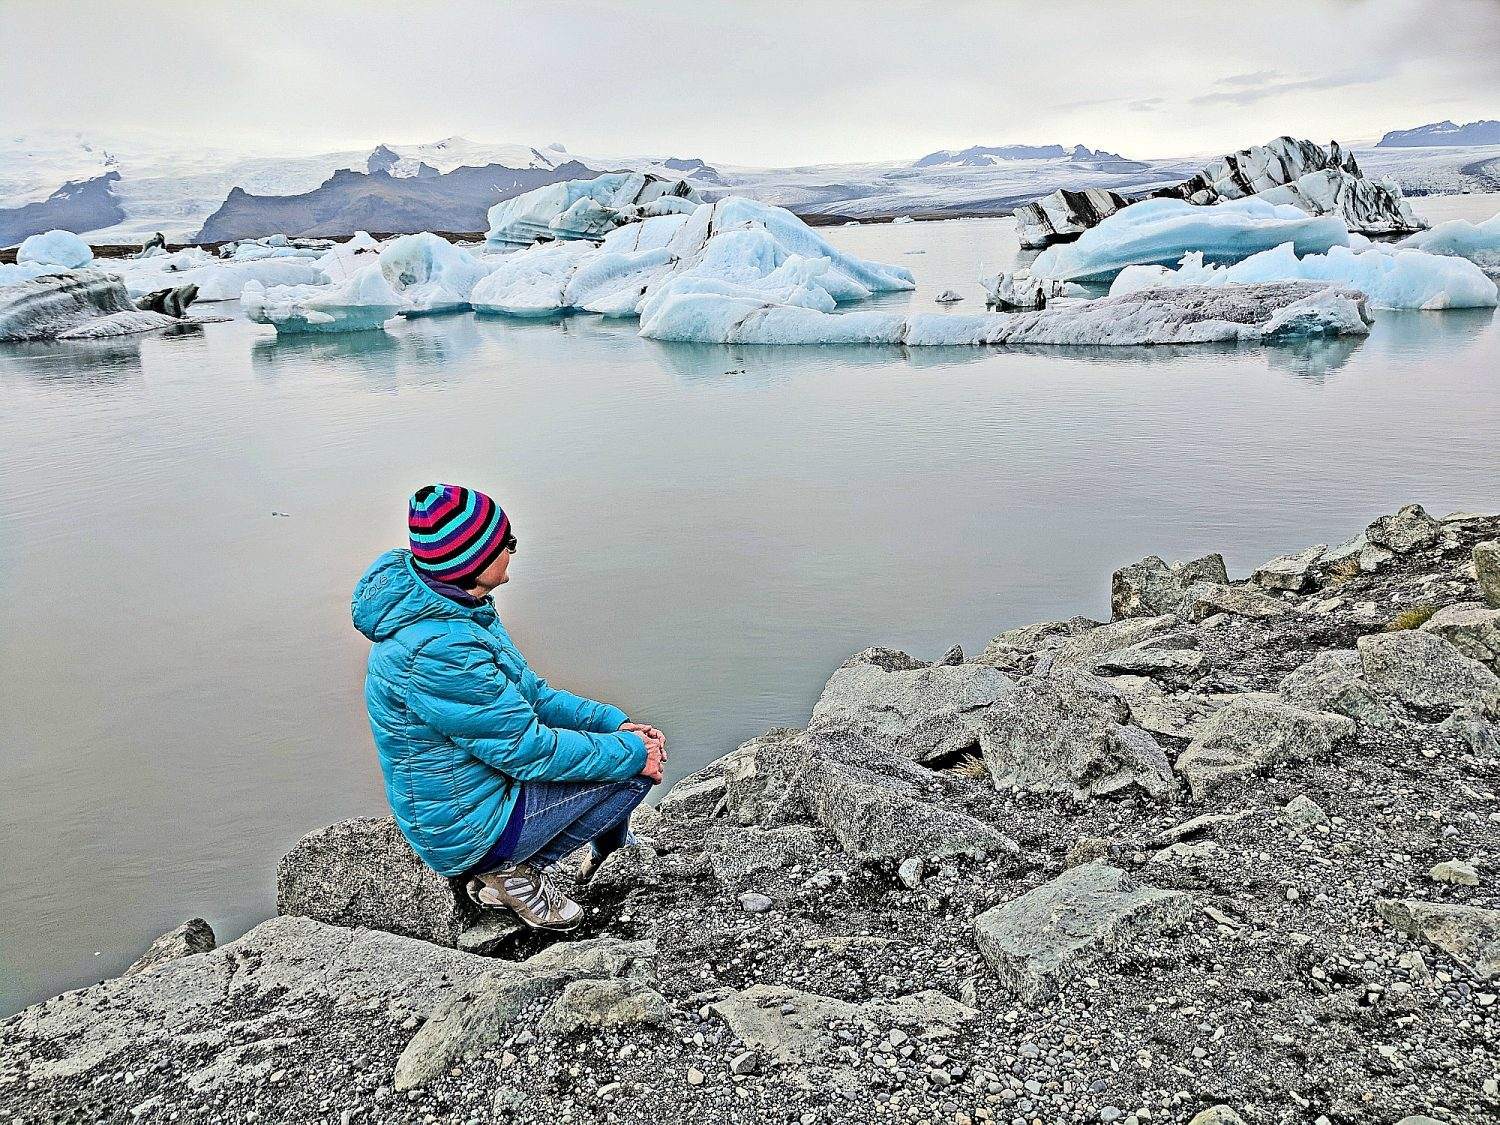 10 top reasons to visit Iceland. Fjallsarlon Glacier Lagoon. Northern Lights or not, you will fall in love with Iceland.